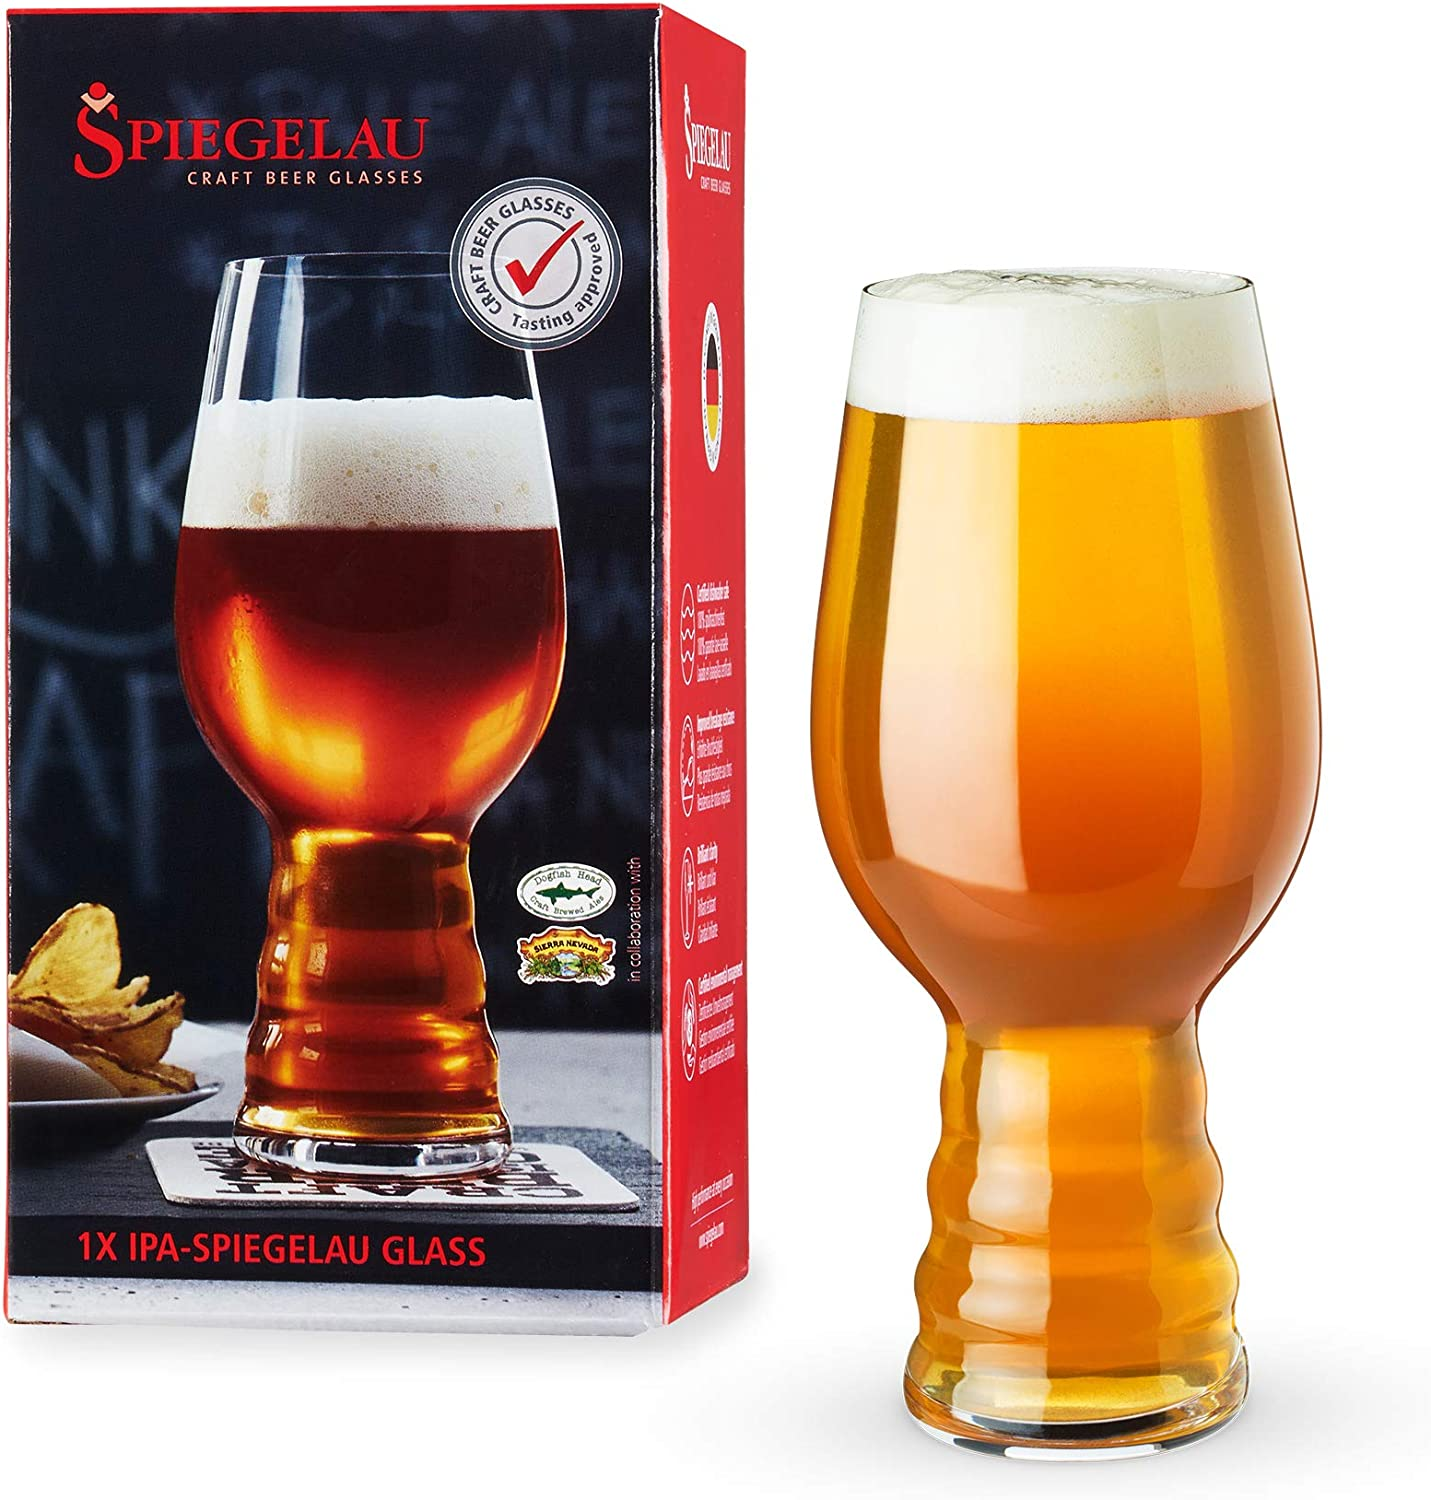 Amazon Com Spiegelau Craft Beer Ipa Glass Set Of 1 European Made Lead Free Crystal Modern Beer Glasses Dishwasher Safe Professional Quality Beer Pint Glass Gift Set 19 1 Oz Kitchen Dining